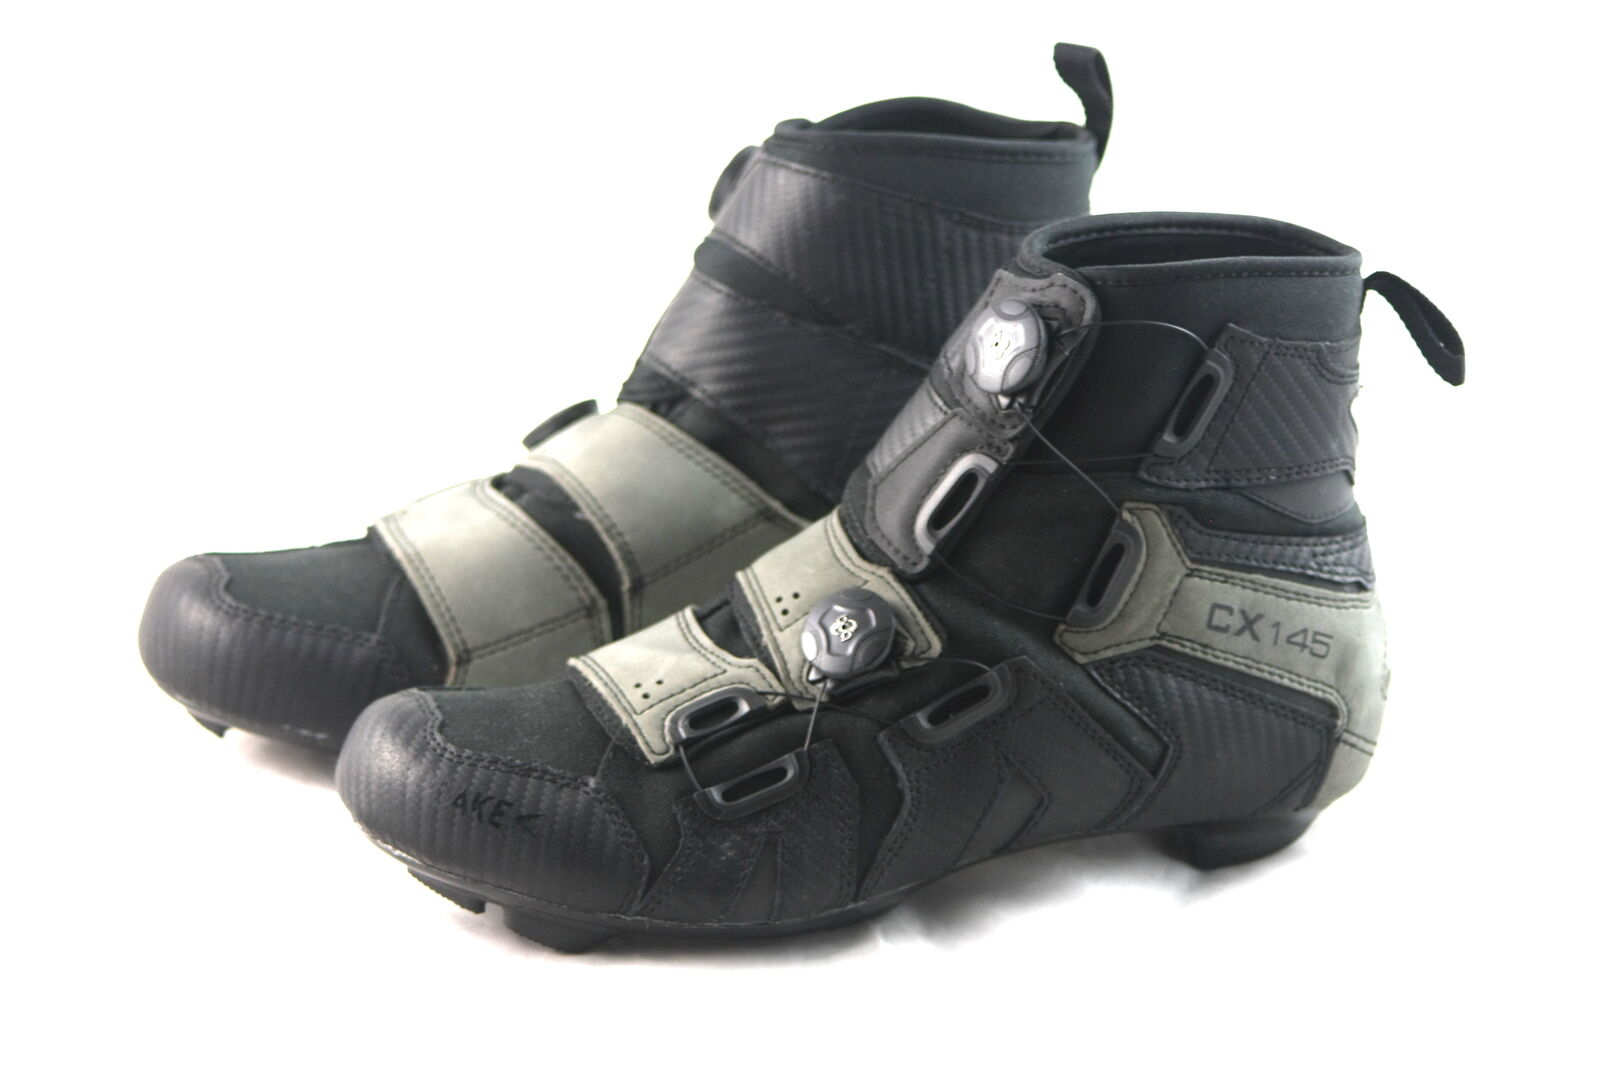 Lake Racing shoes Winter CX145 Sz 42 US  8  outlet online store